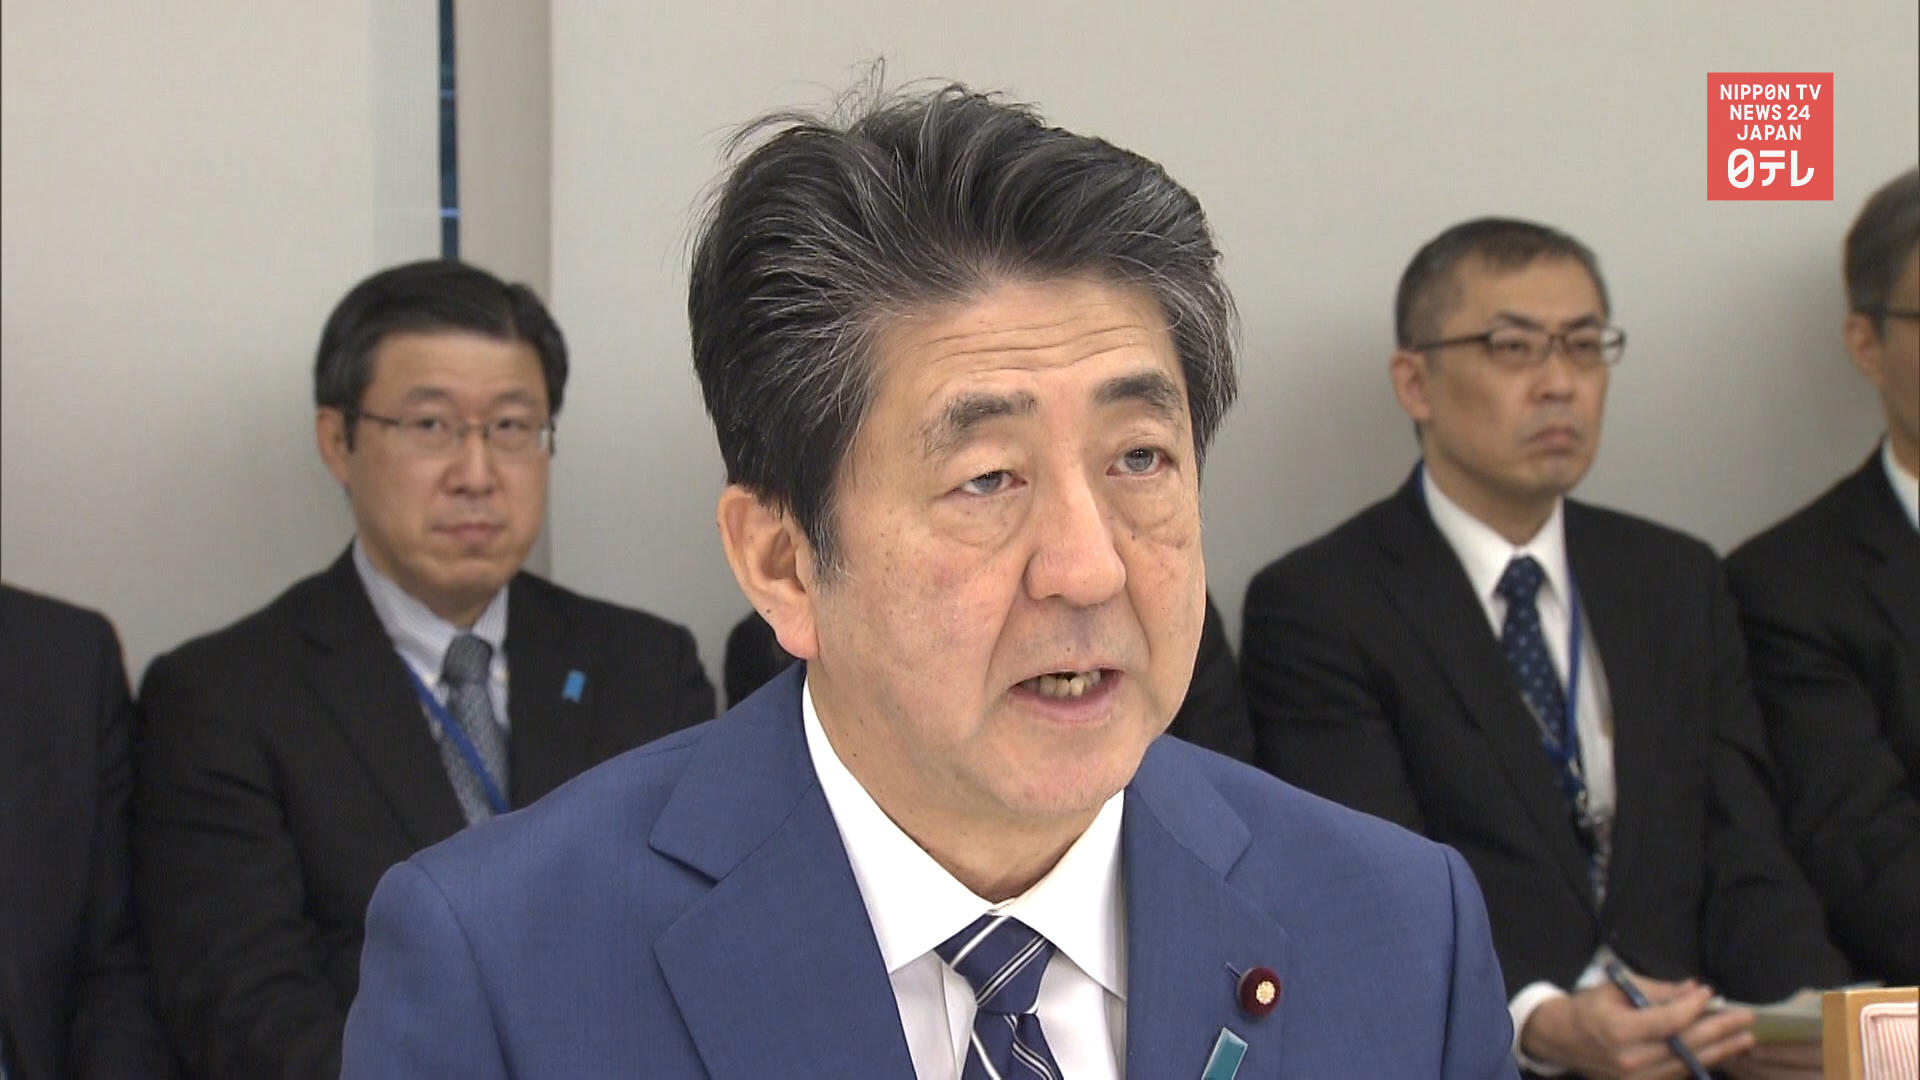 CORONAVIRUS: Japan's government policy to battle outbreak